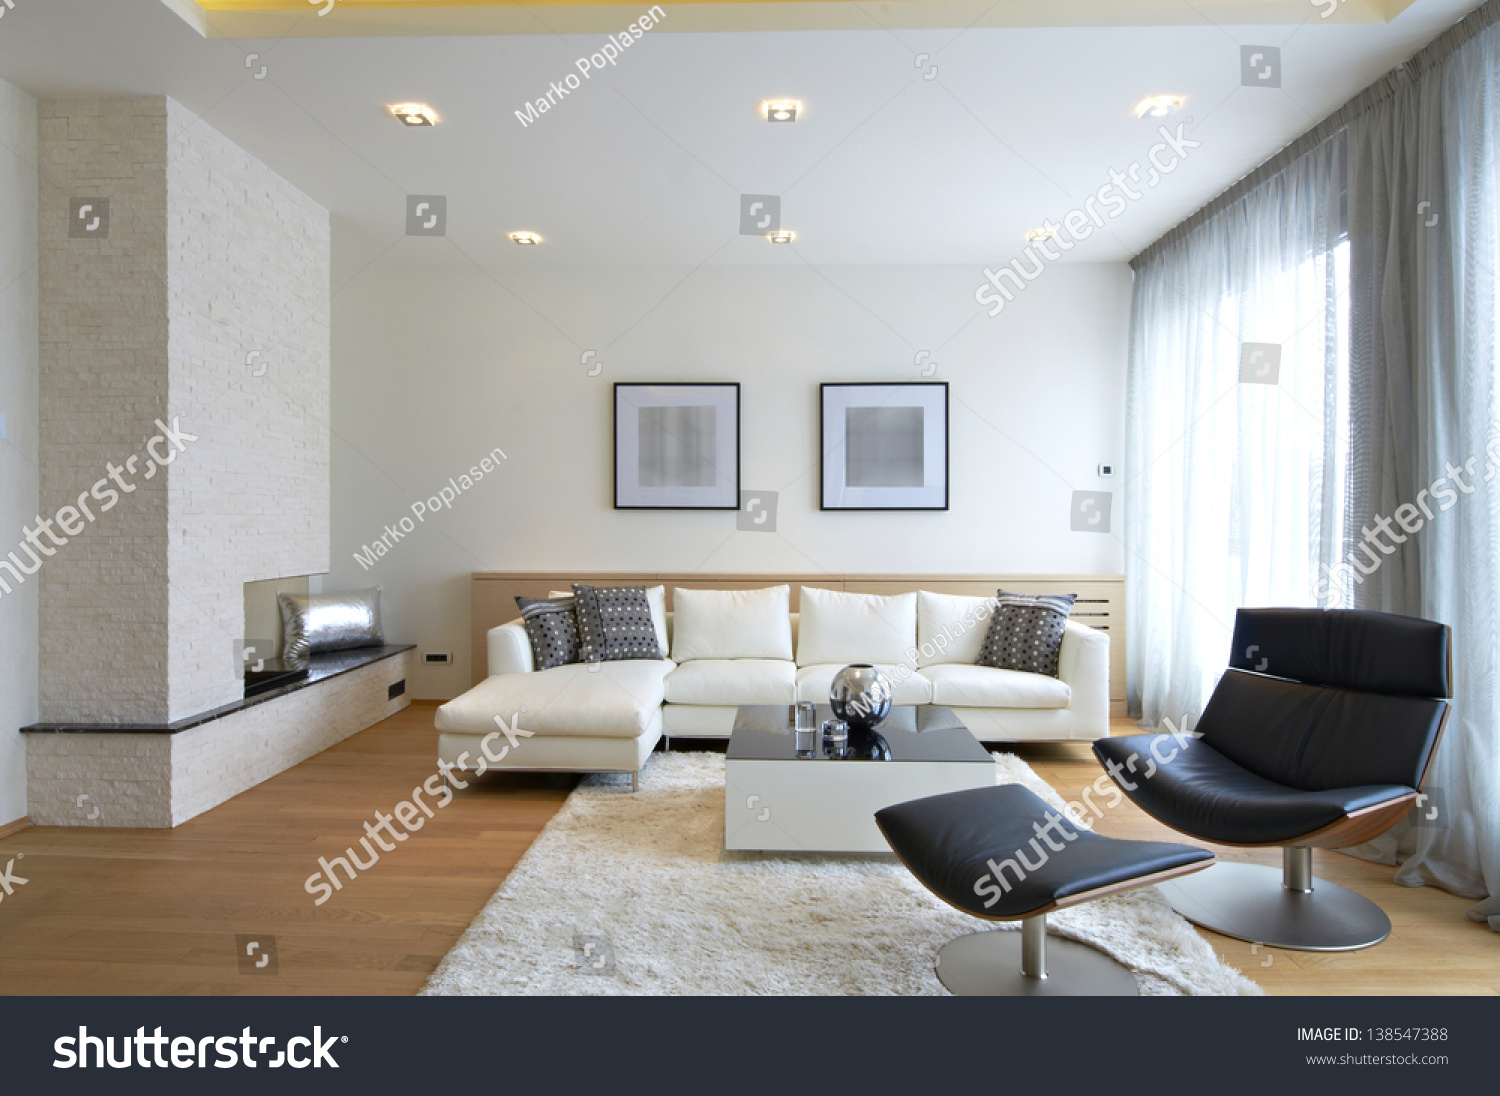 Modern living room interior #138547388